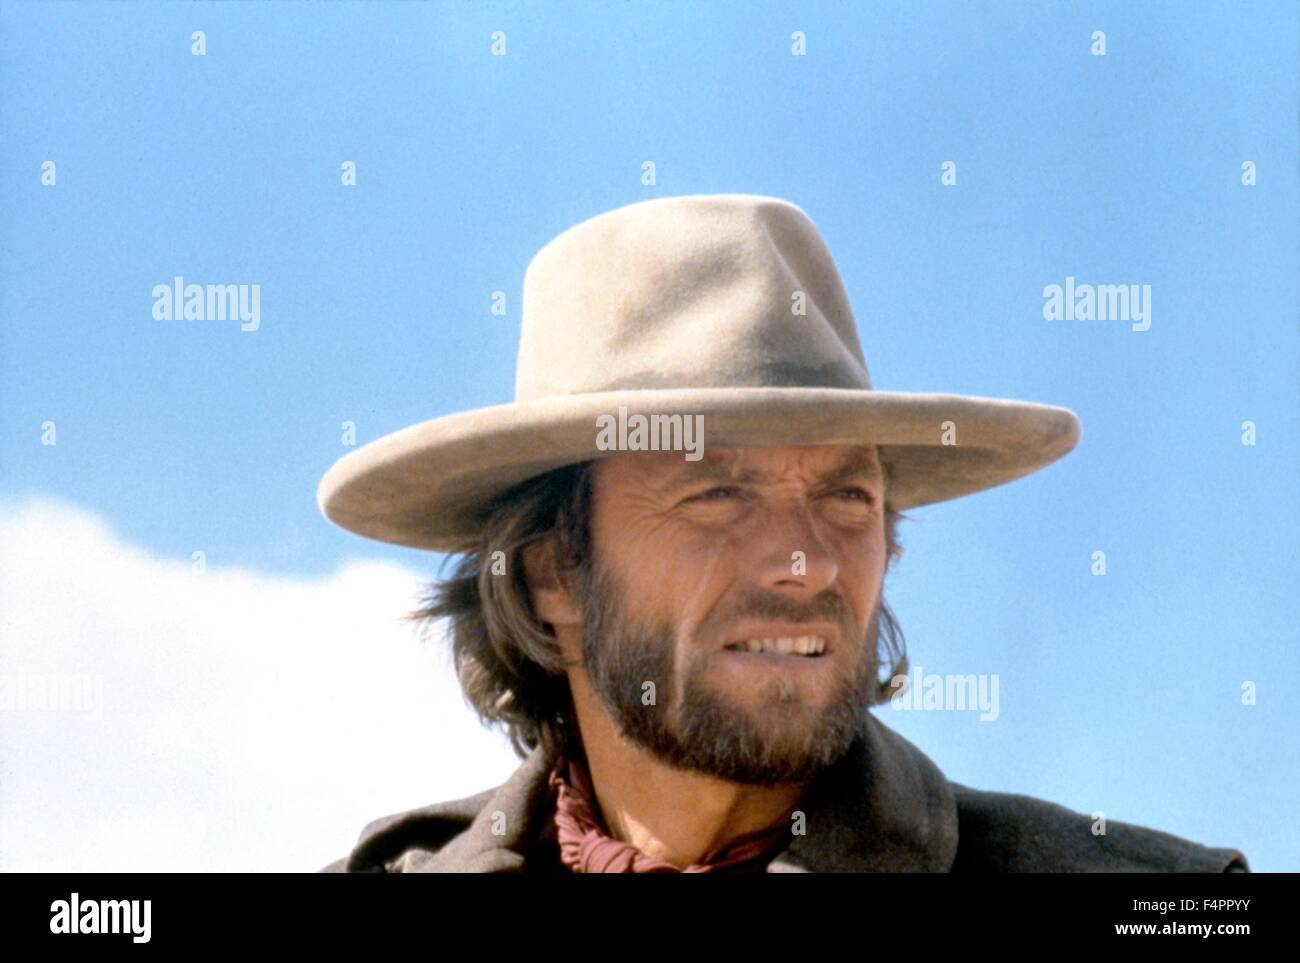 Clint Eastwood / The Outlaw Josey Wales / 1976 directed by Clint Eastwood  [Warner Bros. Pictures] - Stock Image